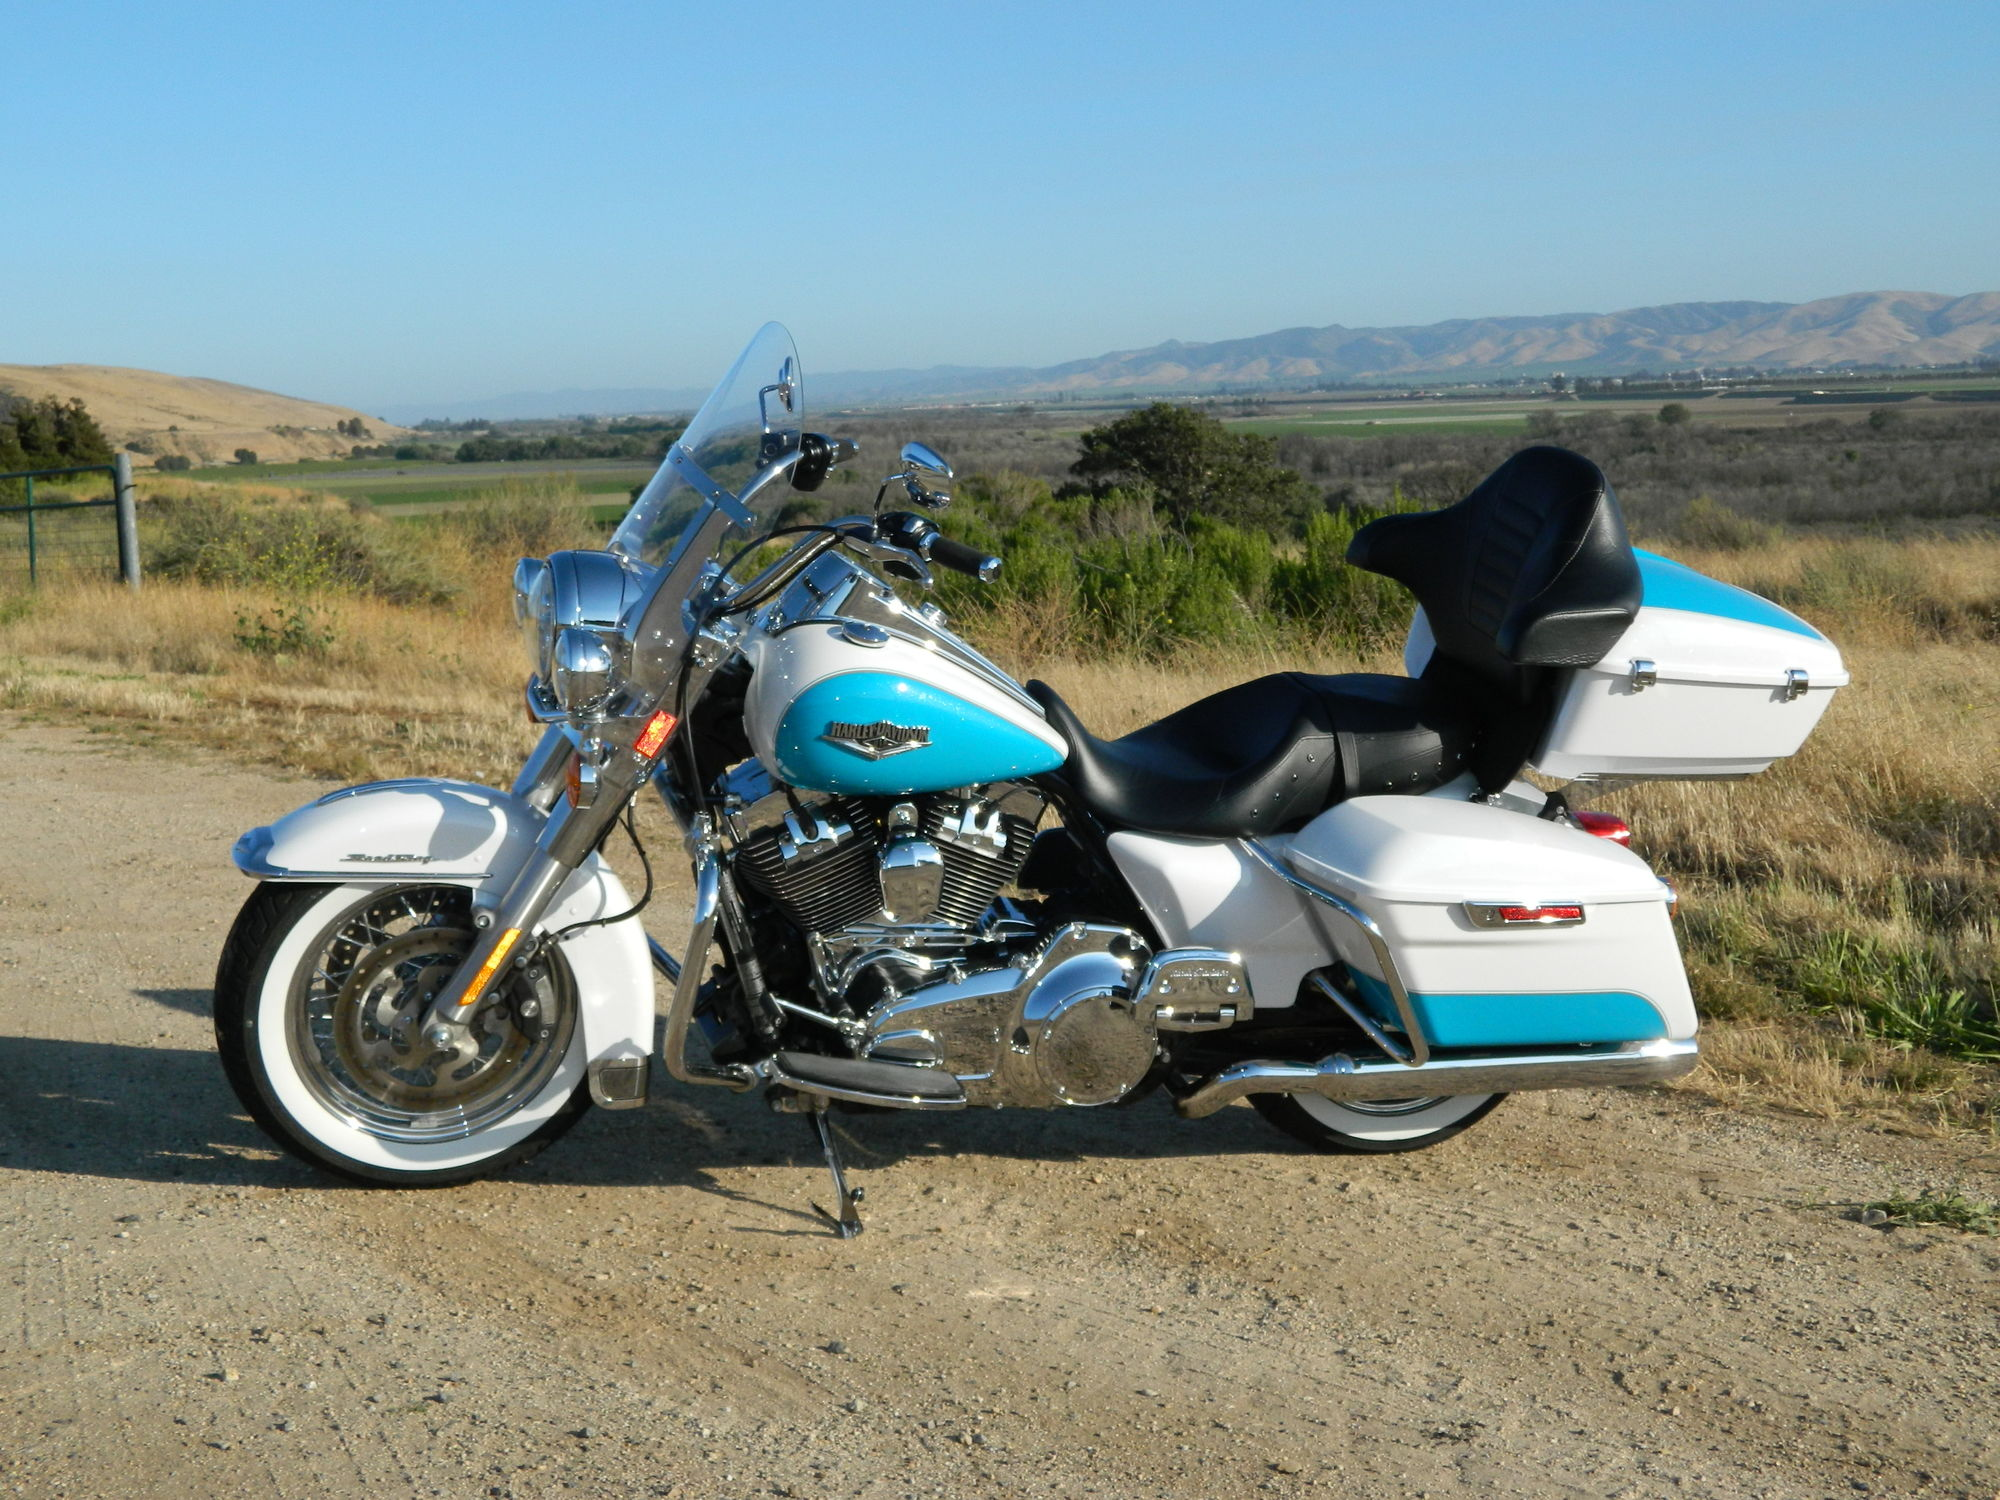 hight resolution of 2016 road king with matching king tour pak af2cb915f85ecab57ef0aa19eea5485f443a4137 wp105 harley davidson softail wiring harness diagram wiring diagrams